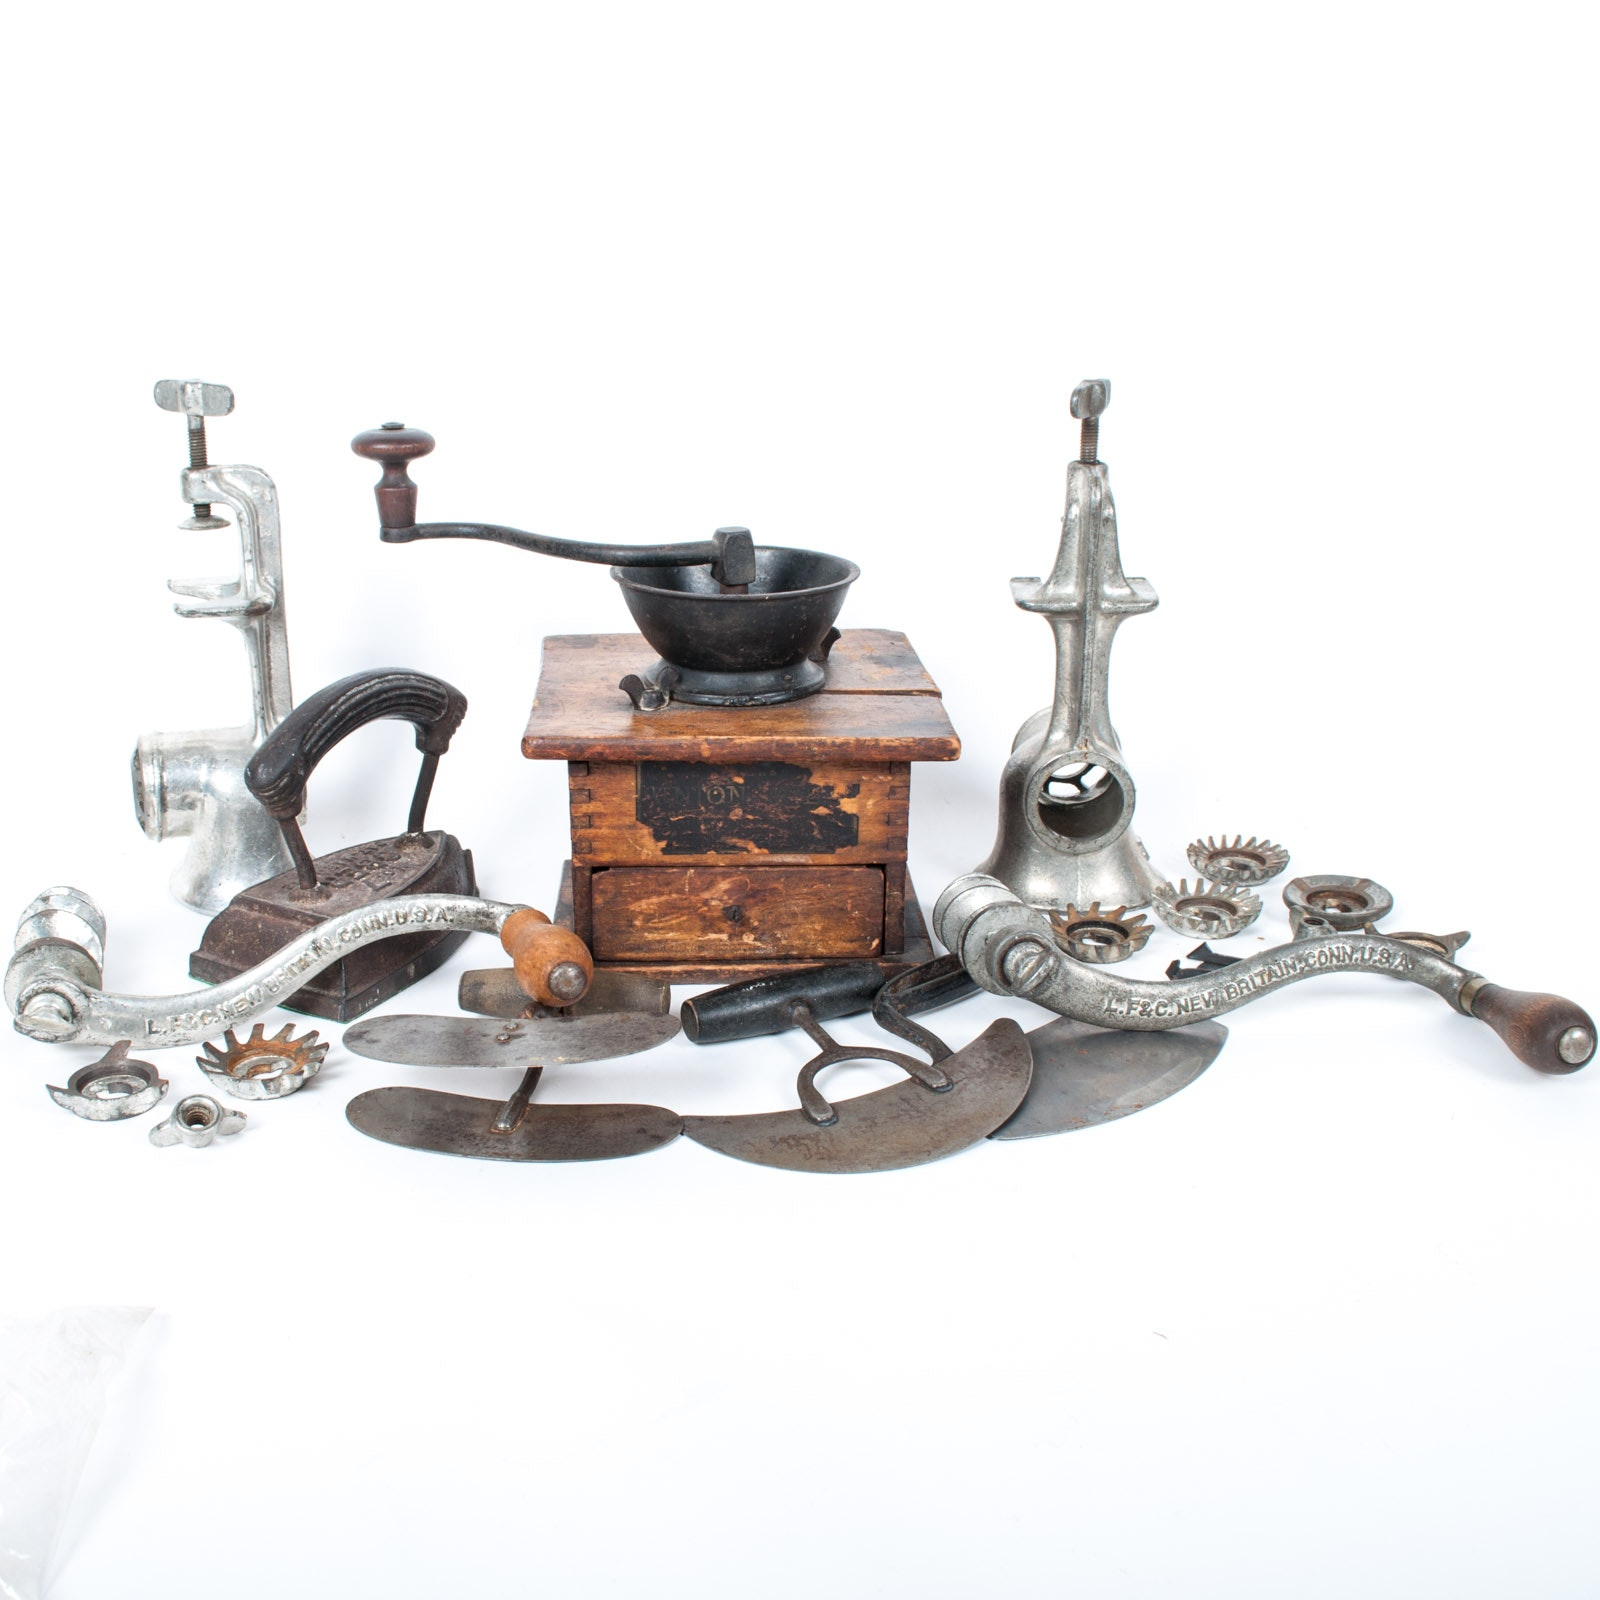 Antique Kitchenalia Assortment Featuring a Union Mill Coffee Mill